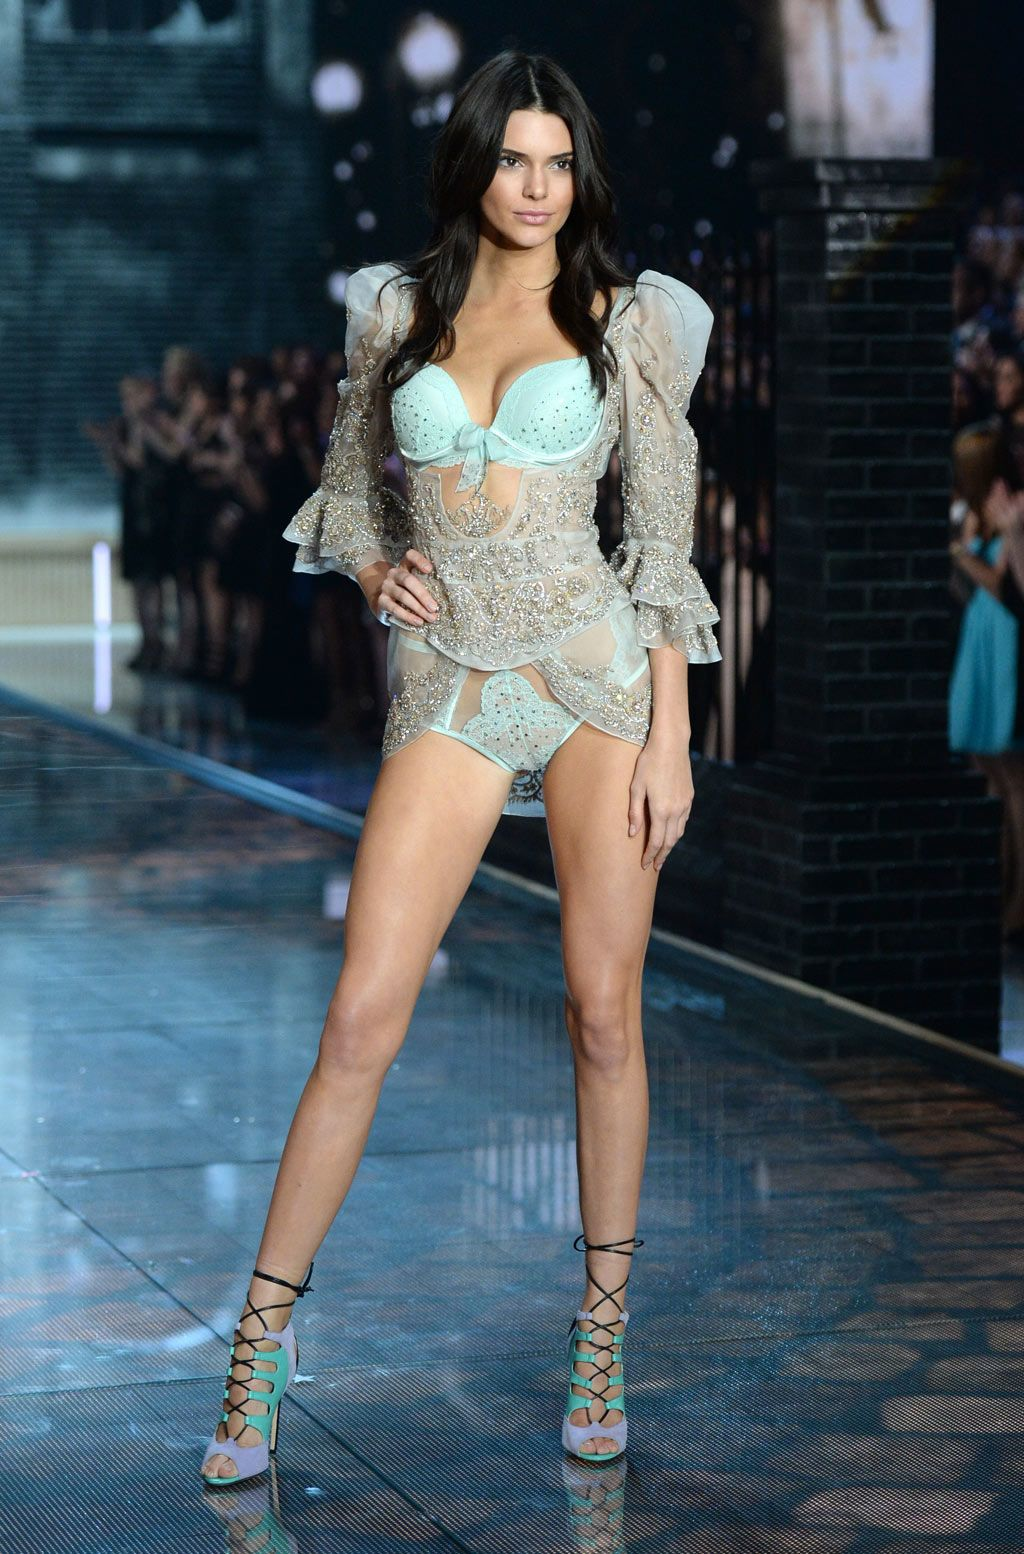 Los looks más sexys del Victoria's Secret Fashion Show 2015